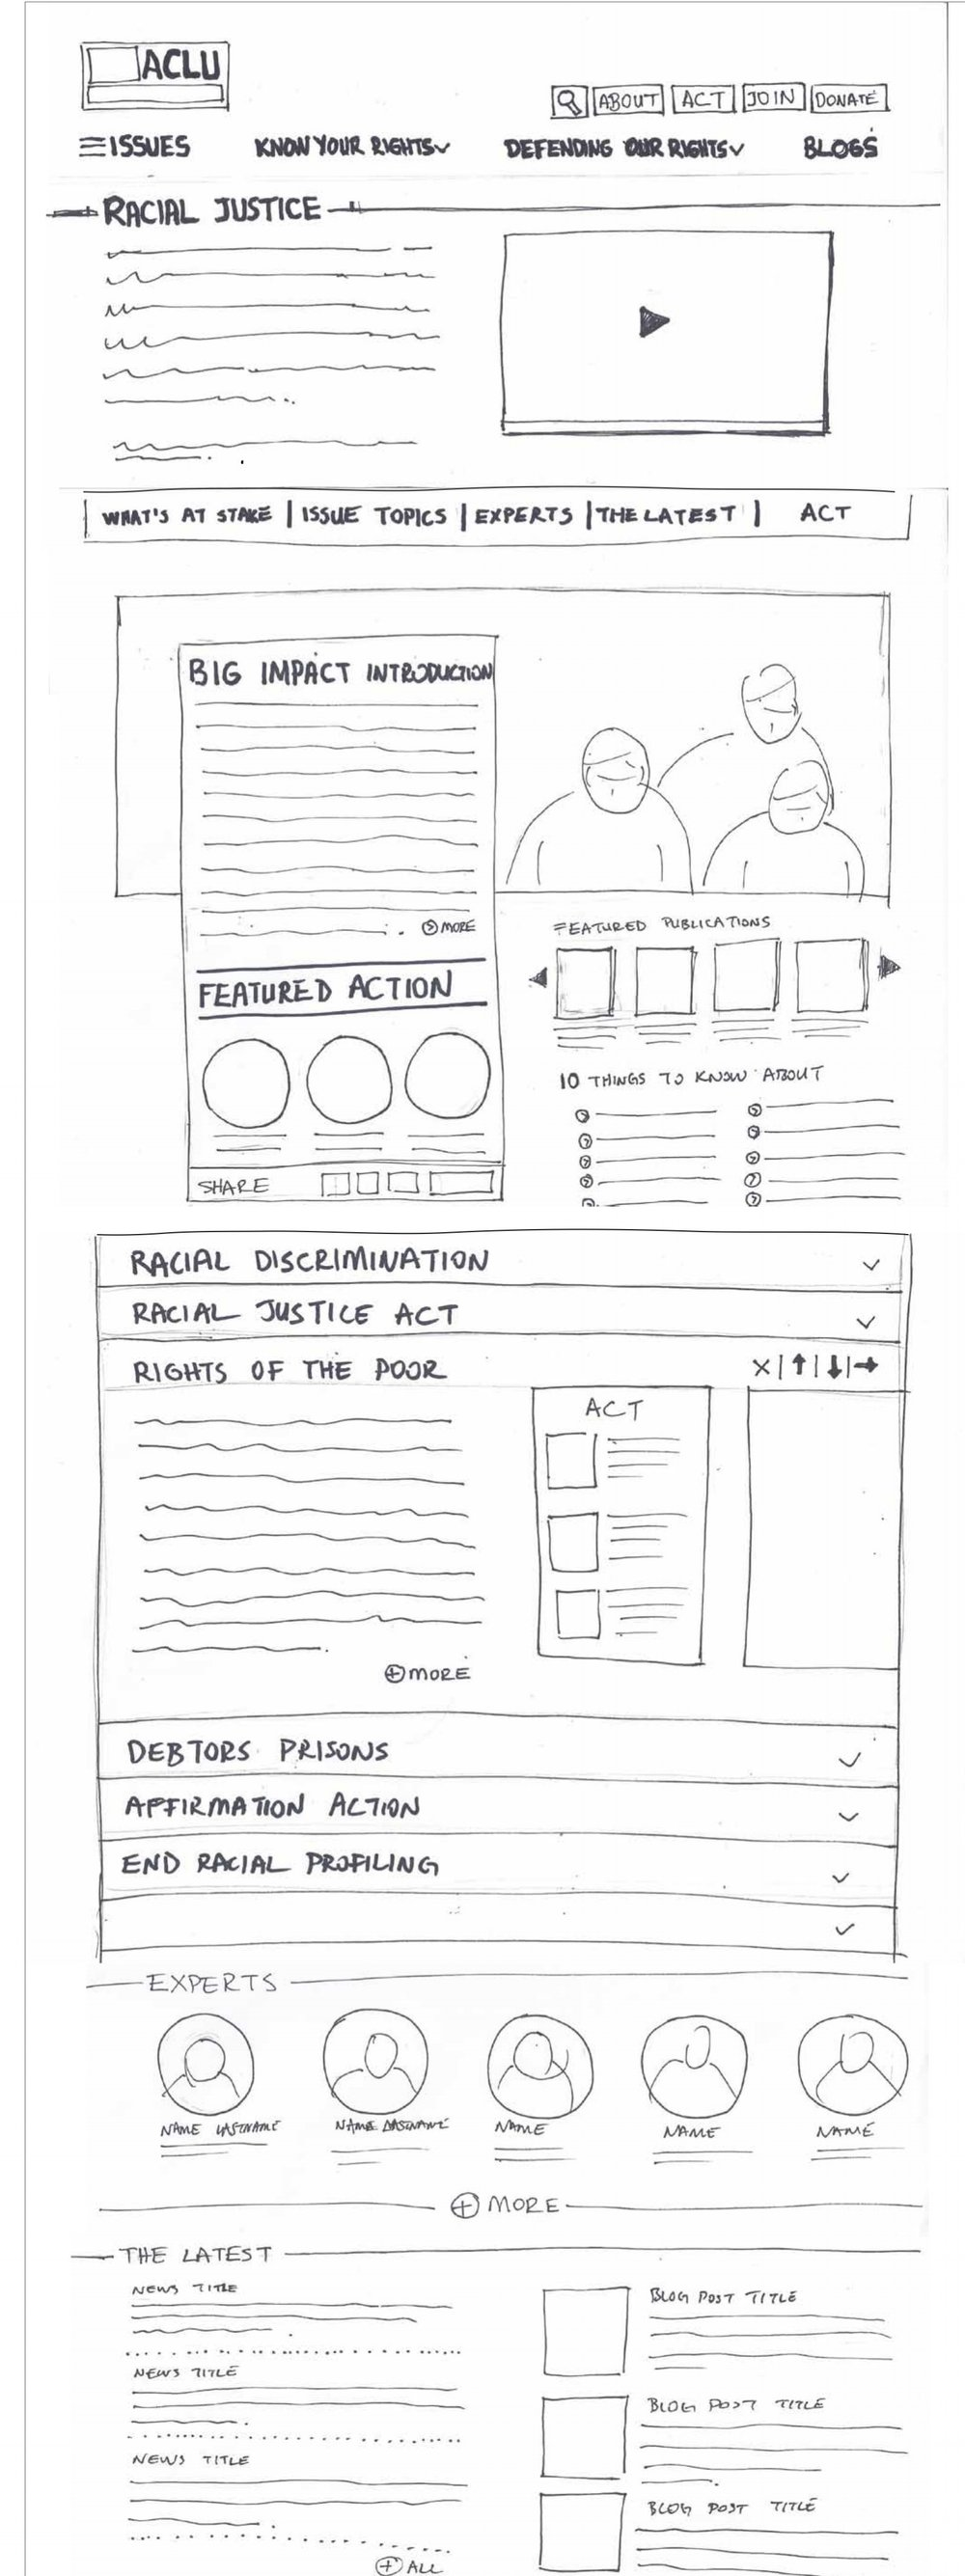 ACLU_Wireframe_Sketches.jpg